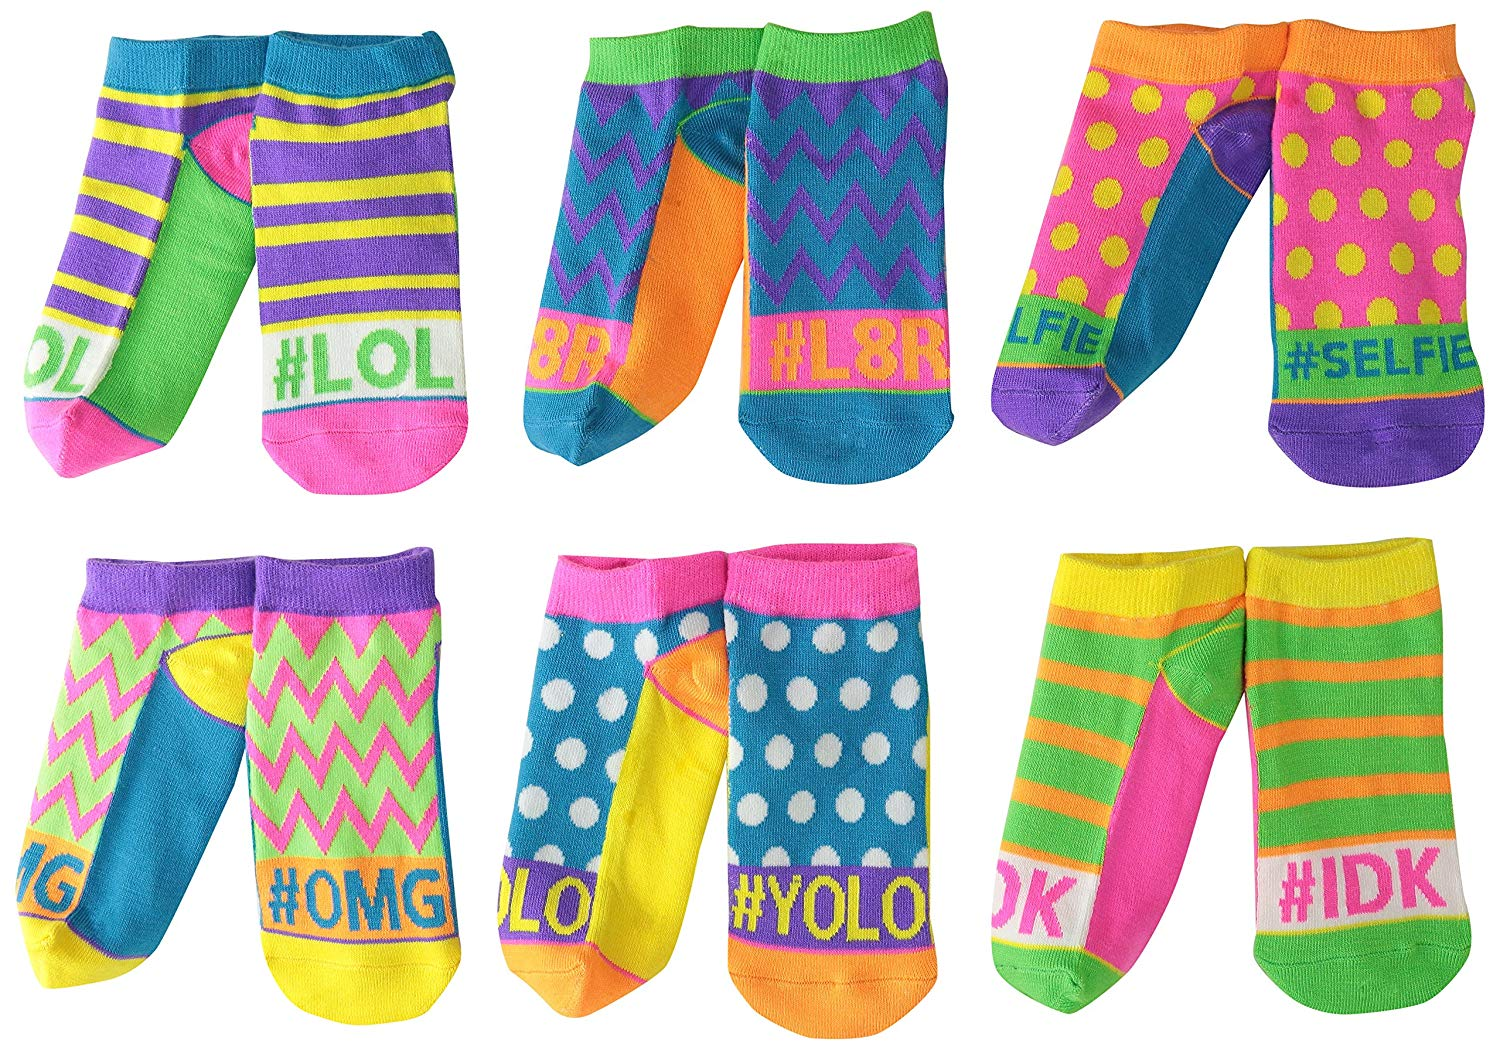 3C4G Three Cheers For Girls Neon Colors Low Cut Socks 2 Pairs